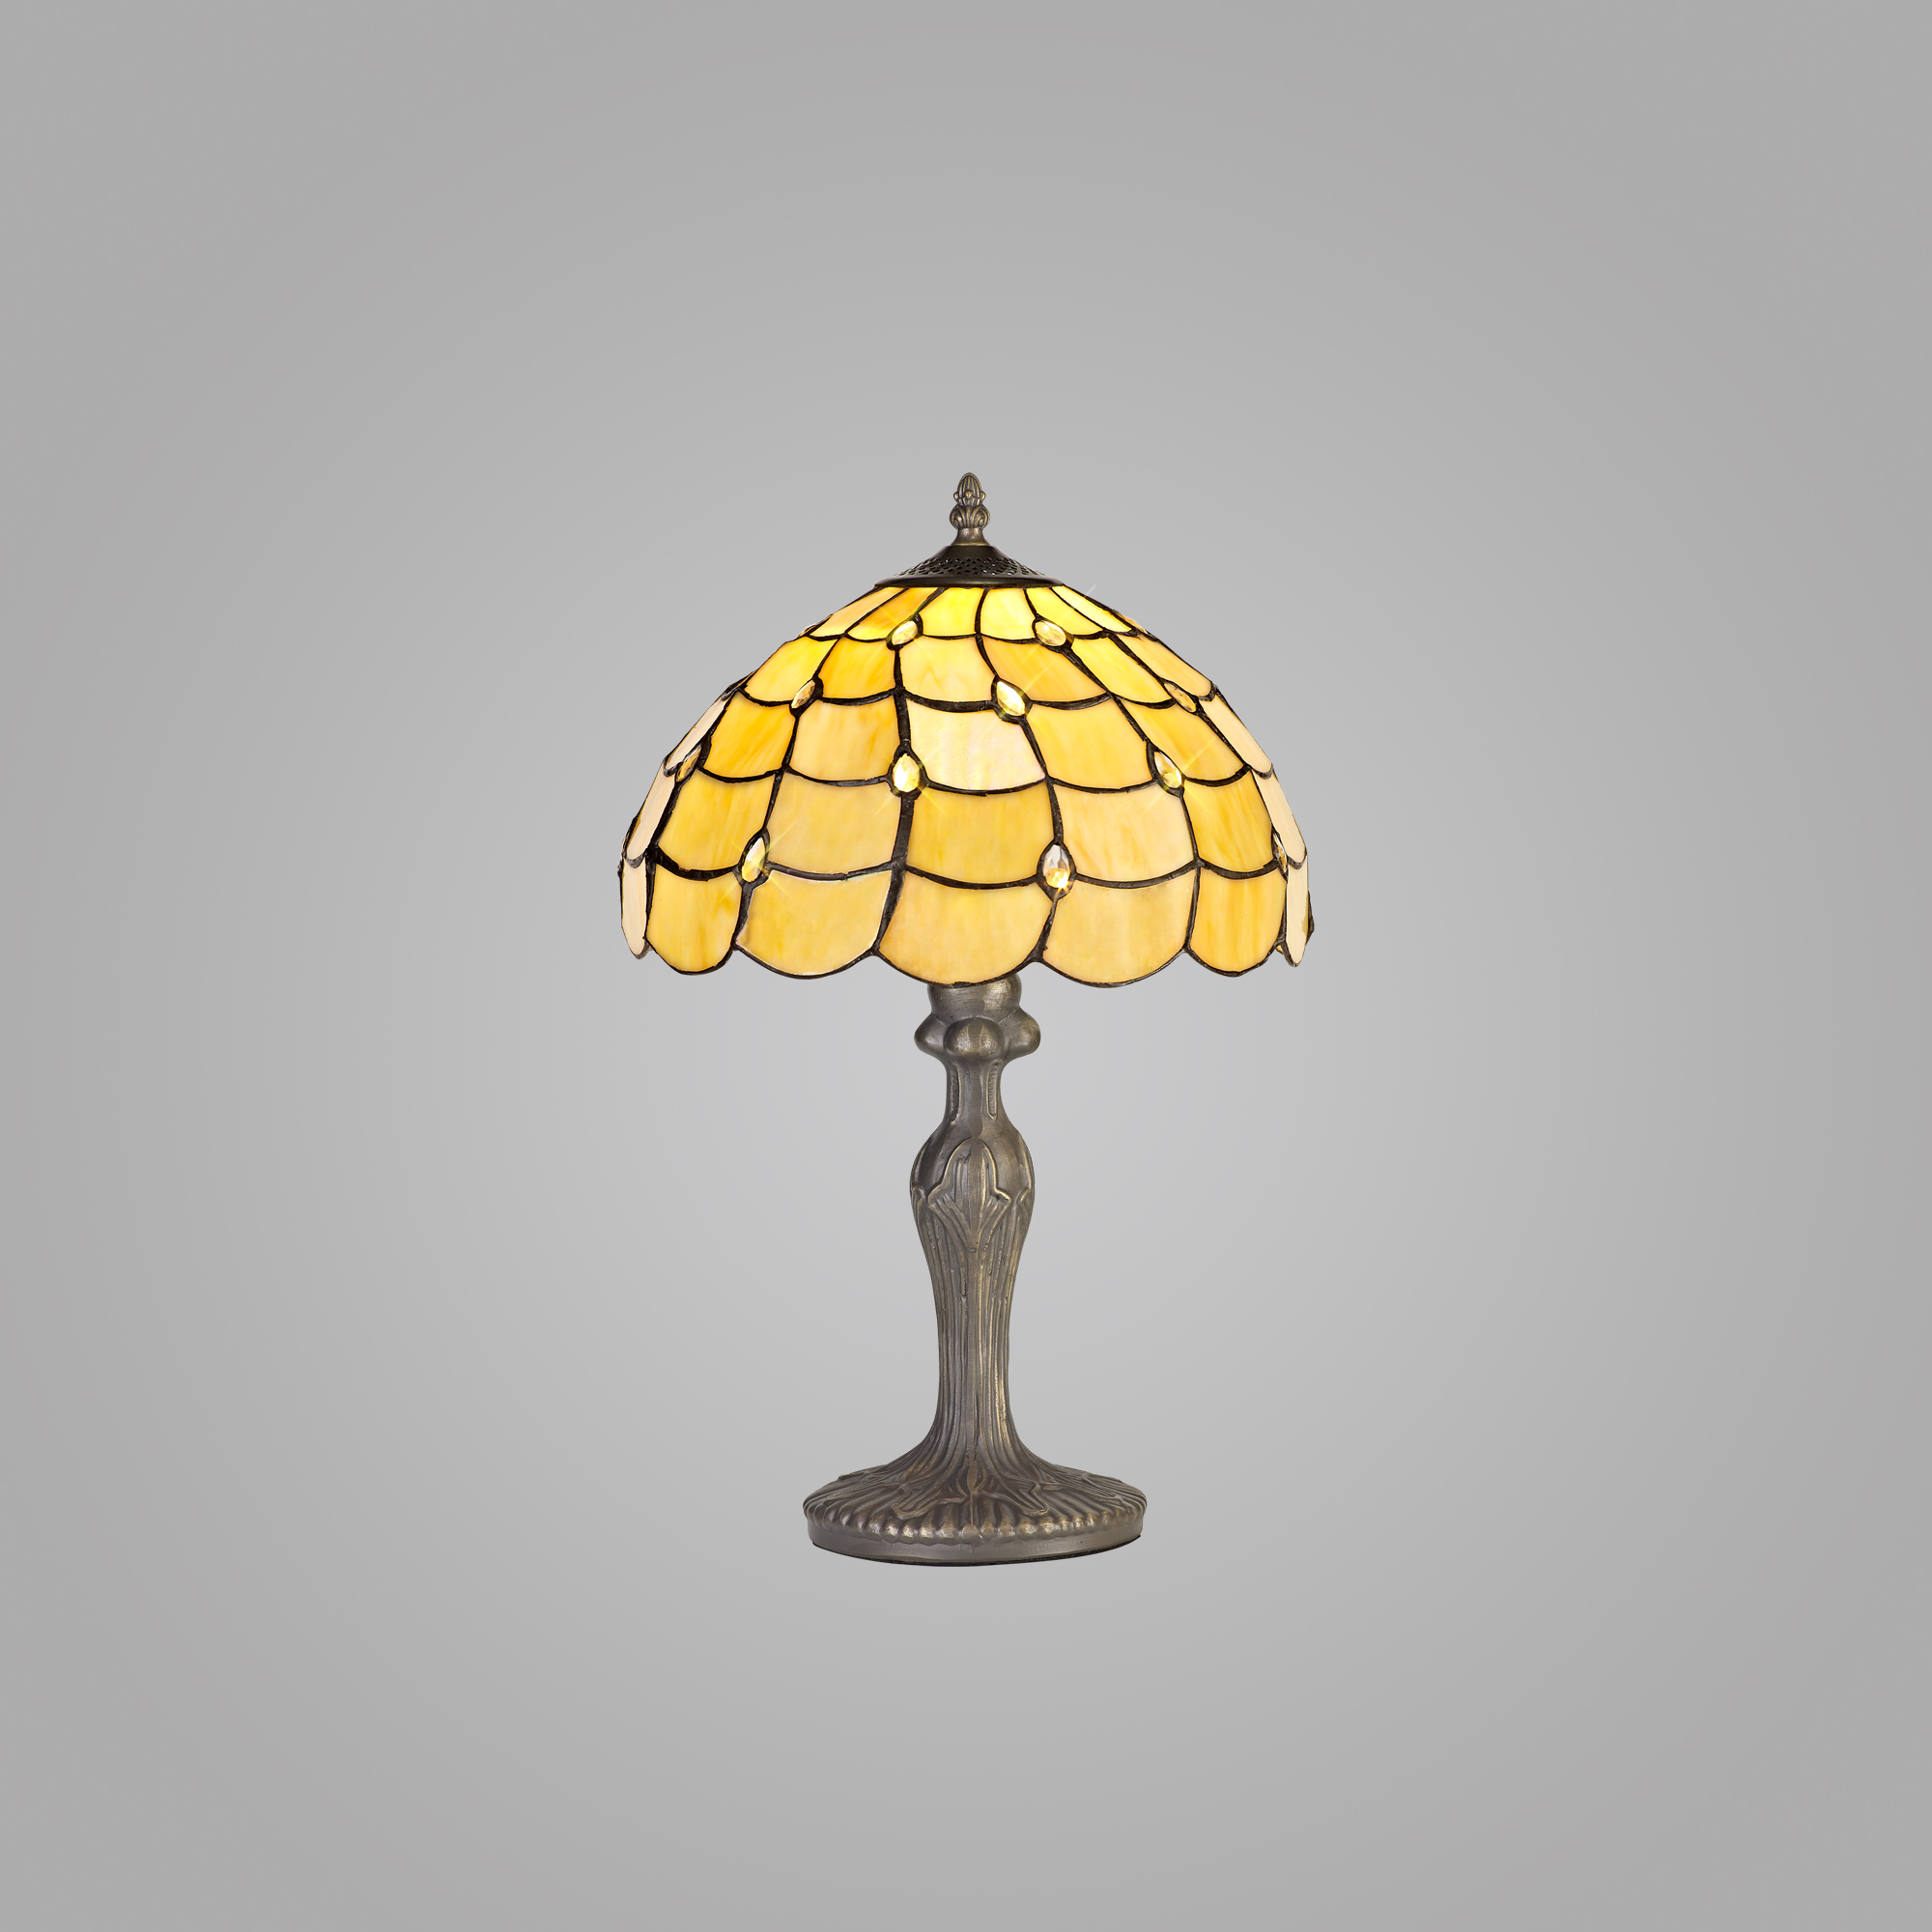 1 Light Curved Table Lamp E27 With 30cm Tiffany Shade, Beige/Clear Crystal/Aged Antique Brass